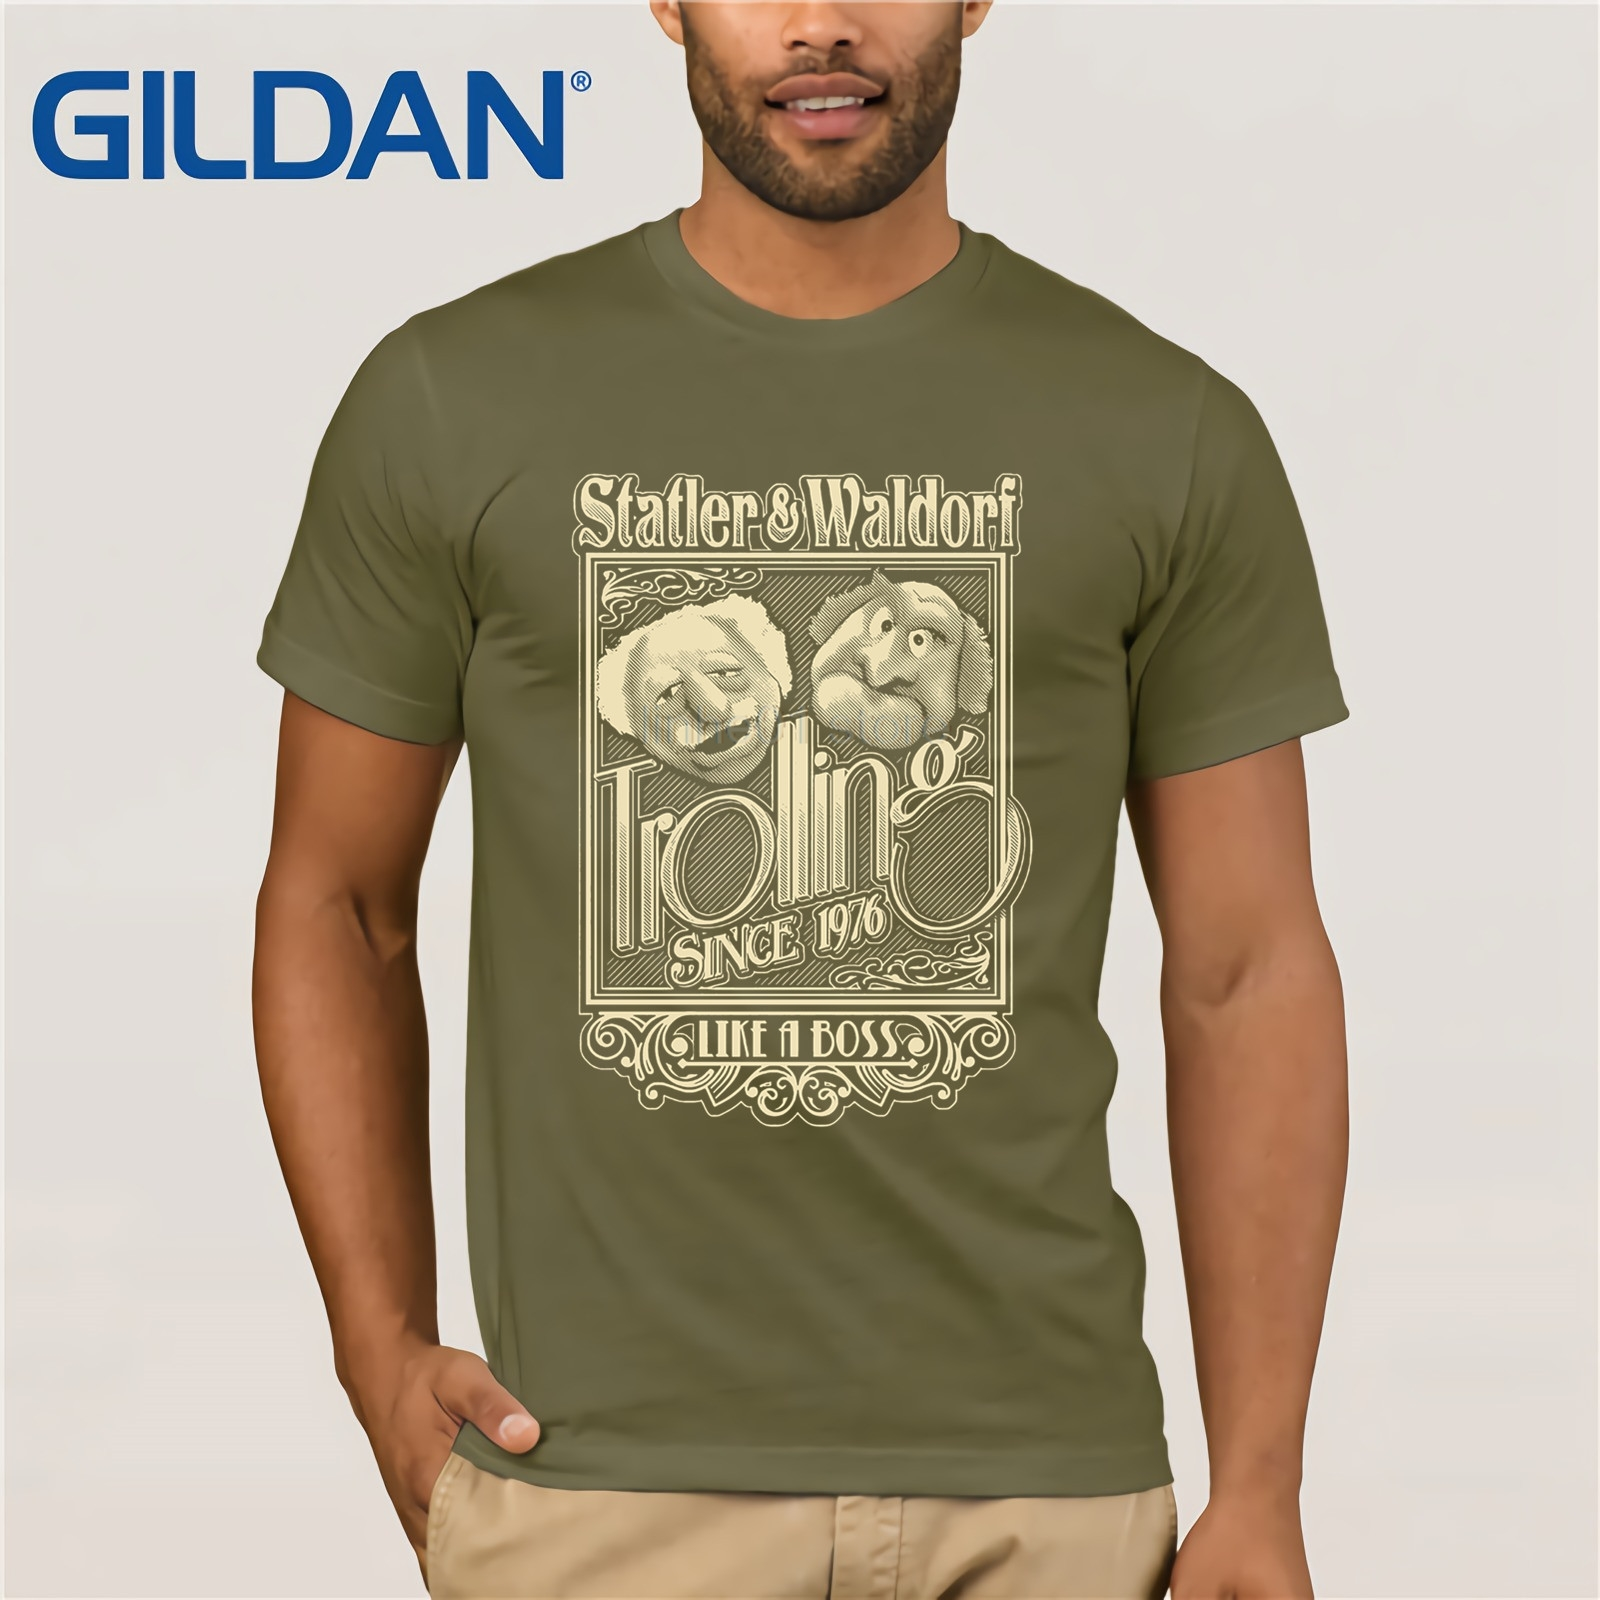 GILDAN The Muppets Hecklers Old Men Circle Image Statler and Waldorf T Shirt 2019 Man Soft Short Sleeve 100 Cotton Tee in T Shirts from Men 39 s Clothing